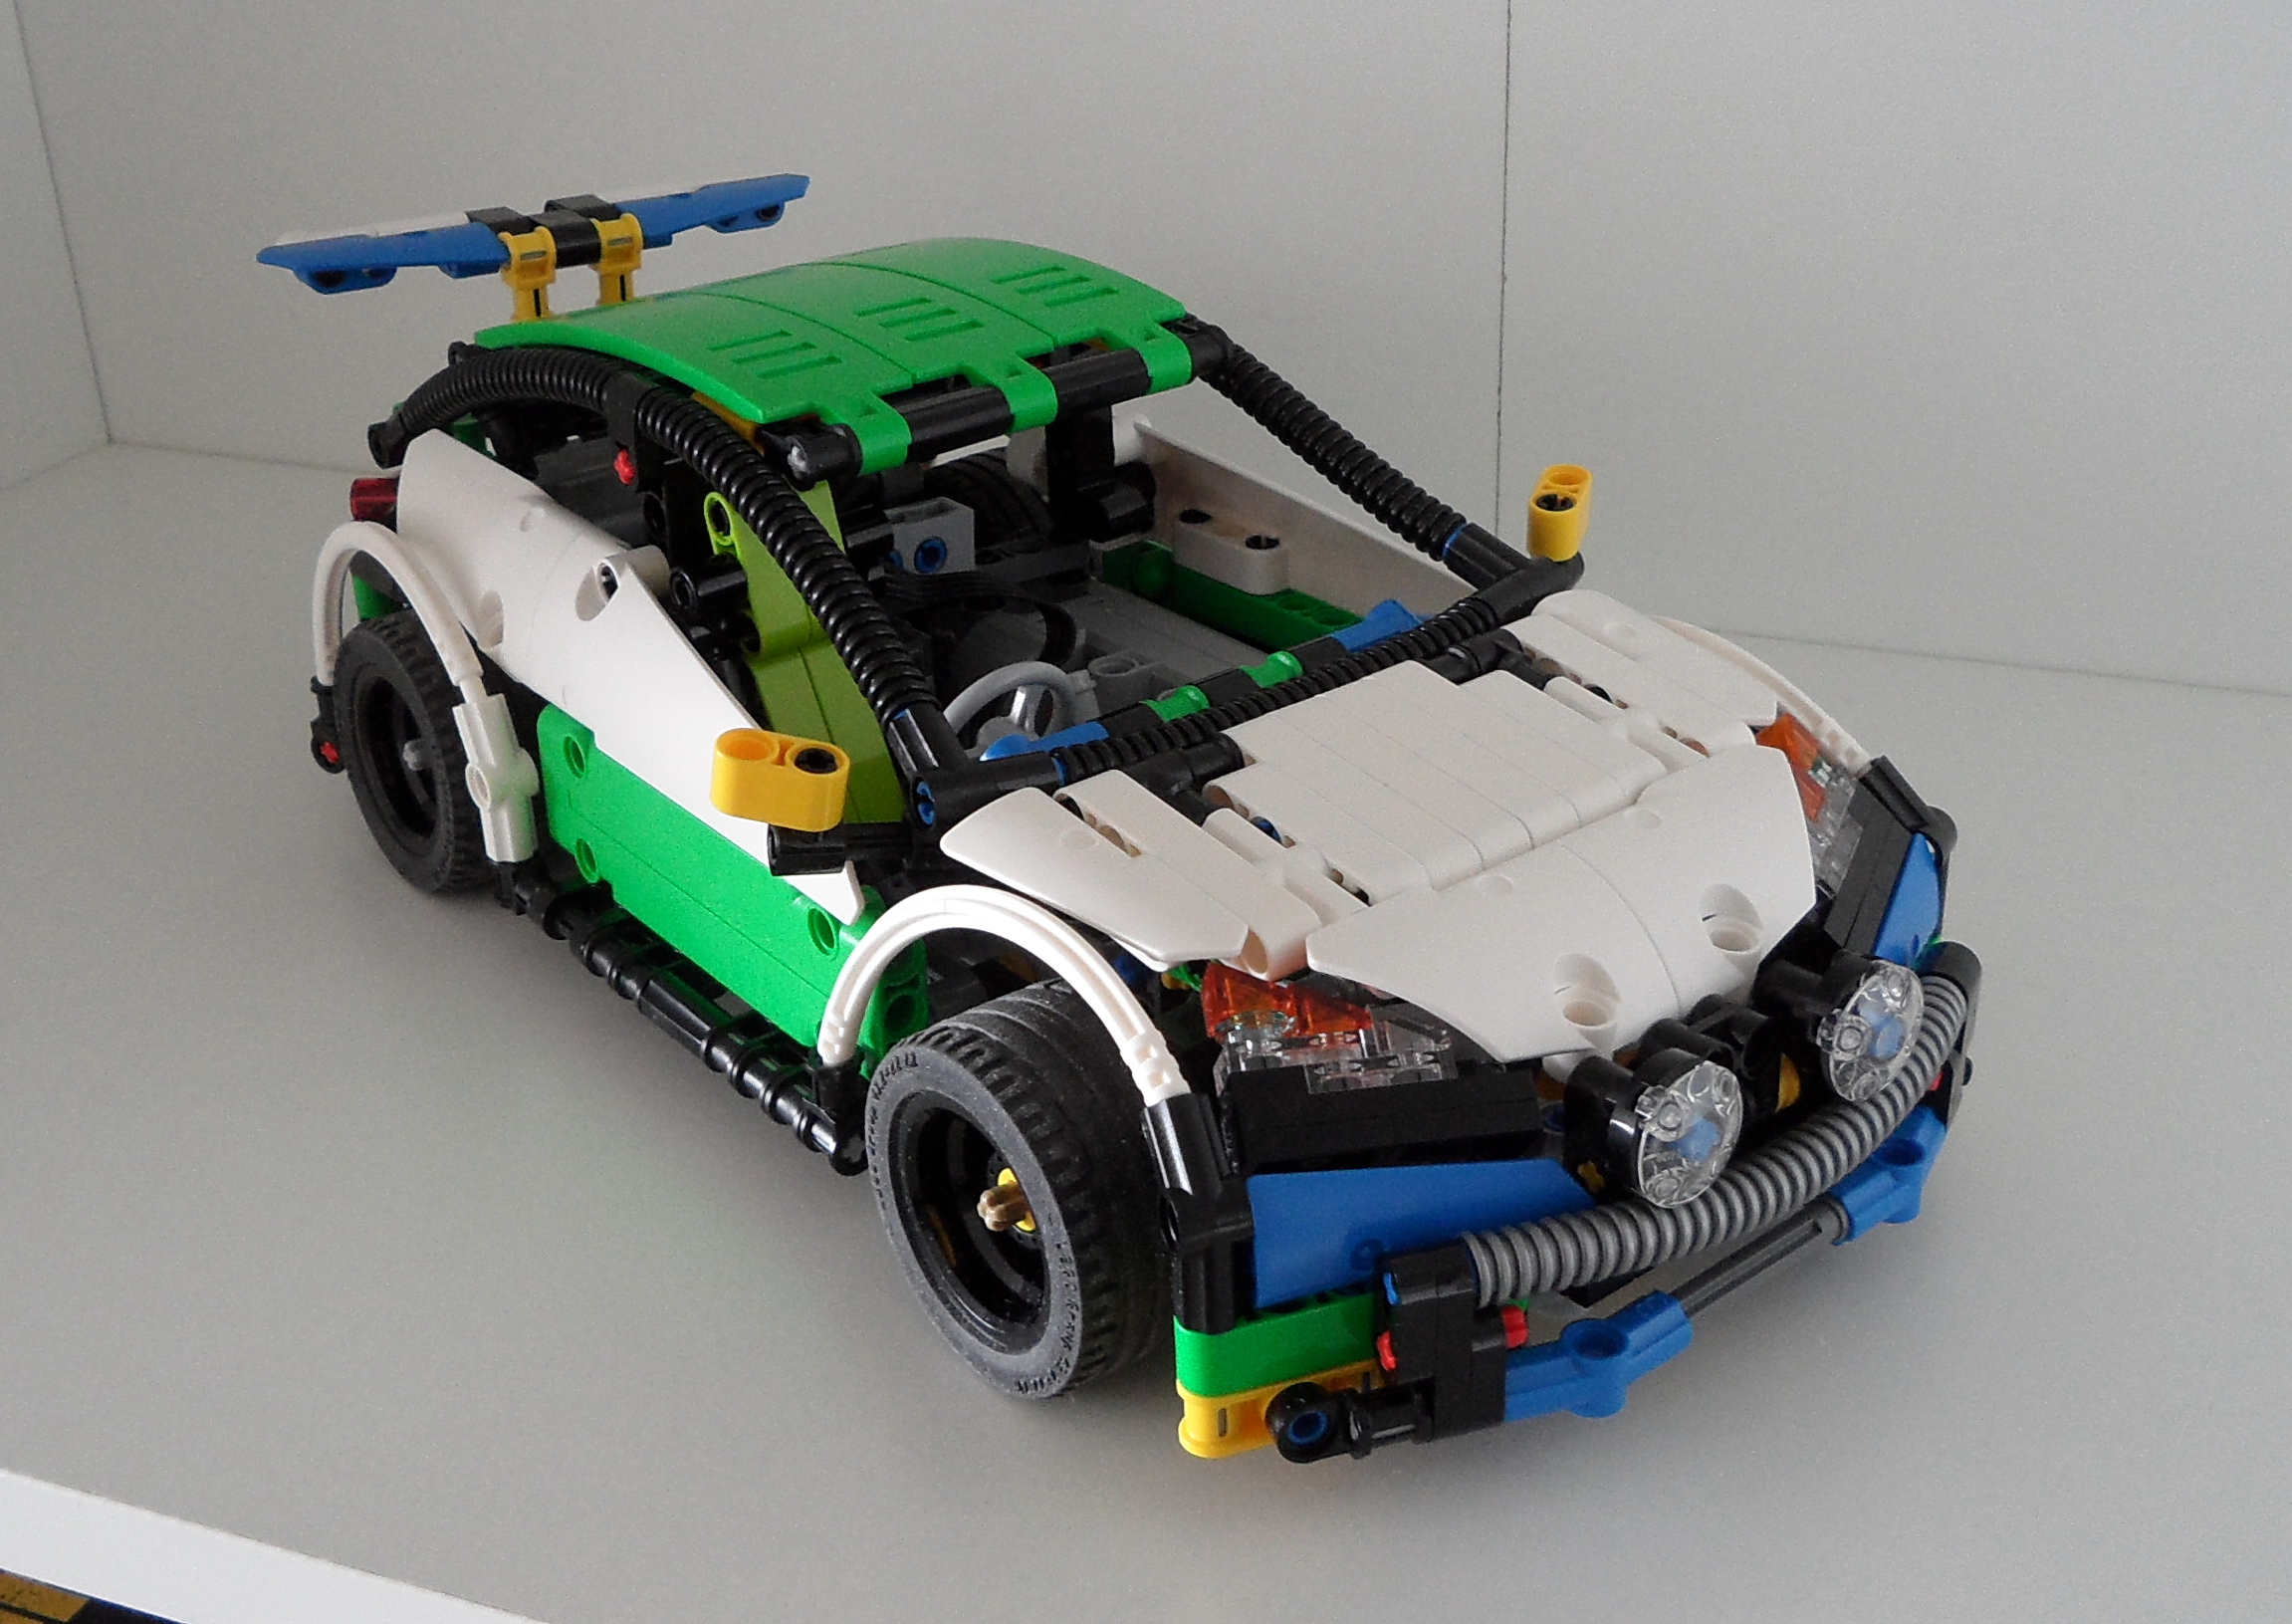 Lego Moc 6604 Hatchback Type R Technic 2017 Rebrickable Build